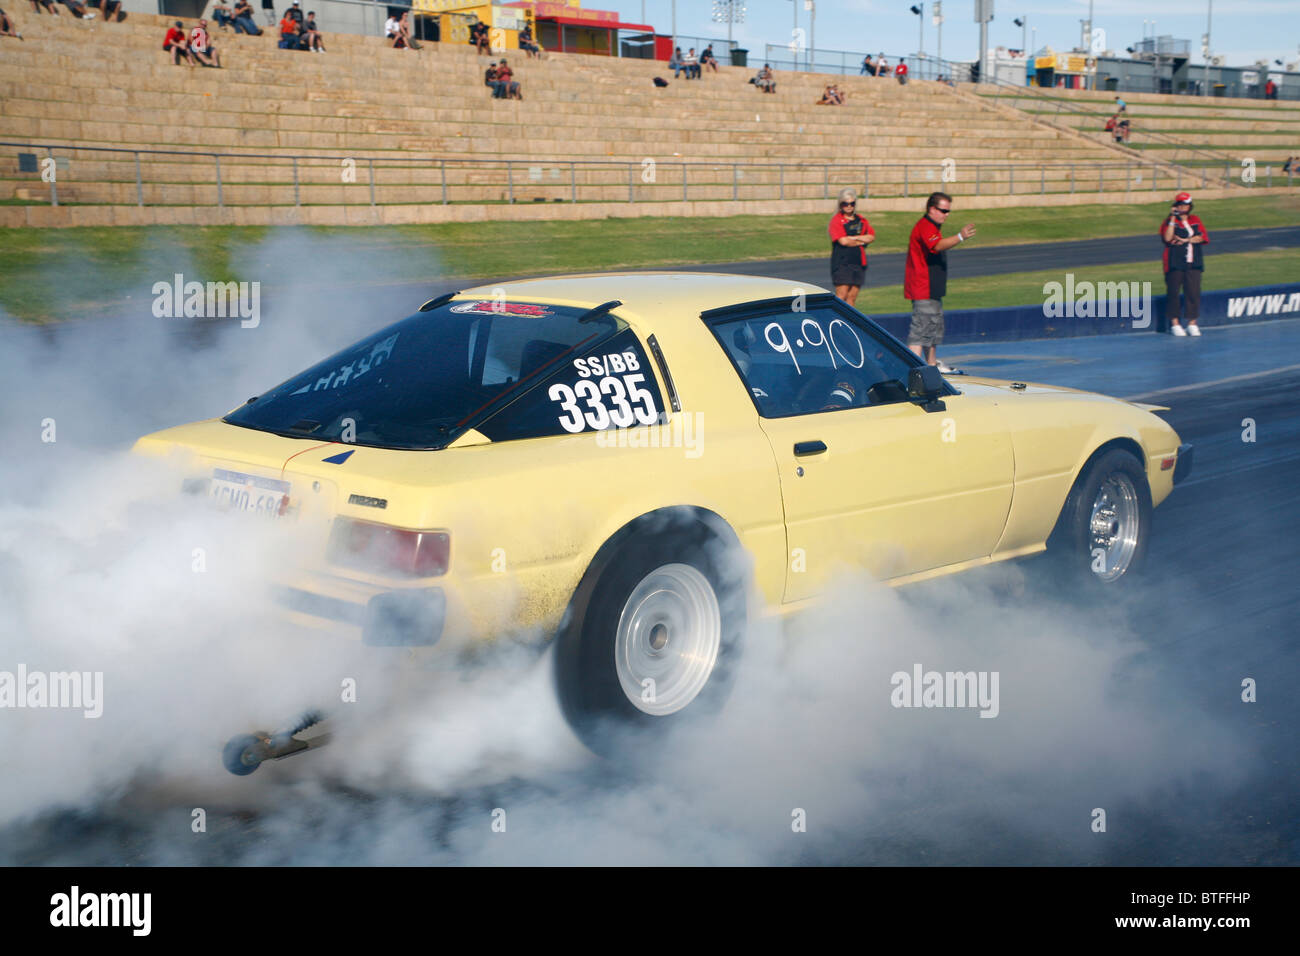 Mazda RX7 Rotary Engined Drag Racing Car Performing A Burnout   Stock Image